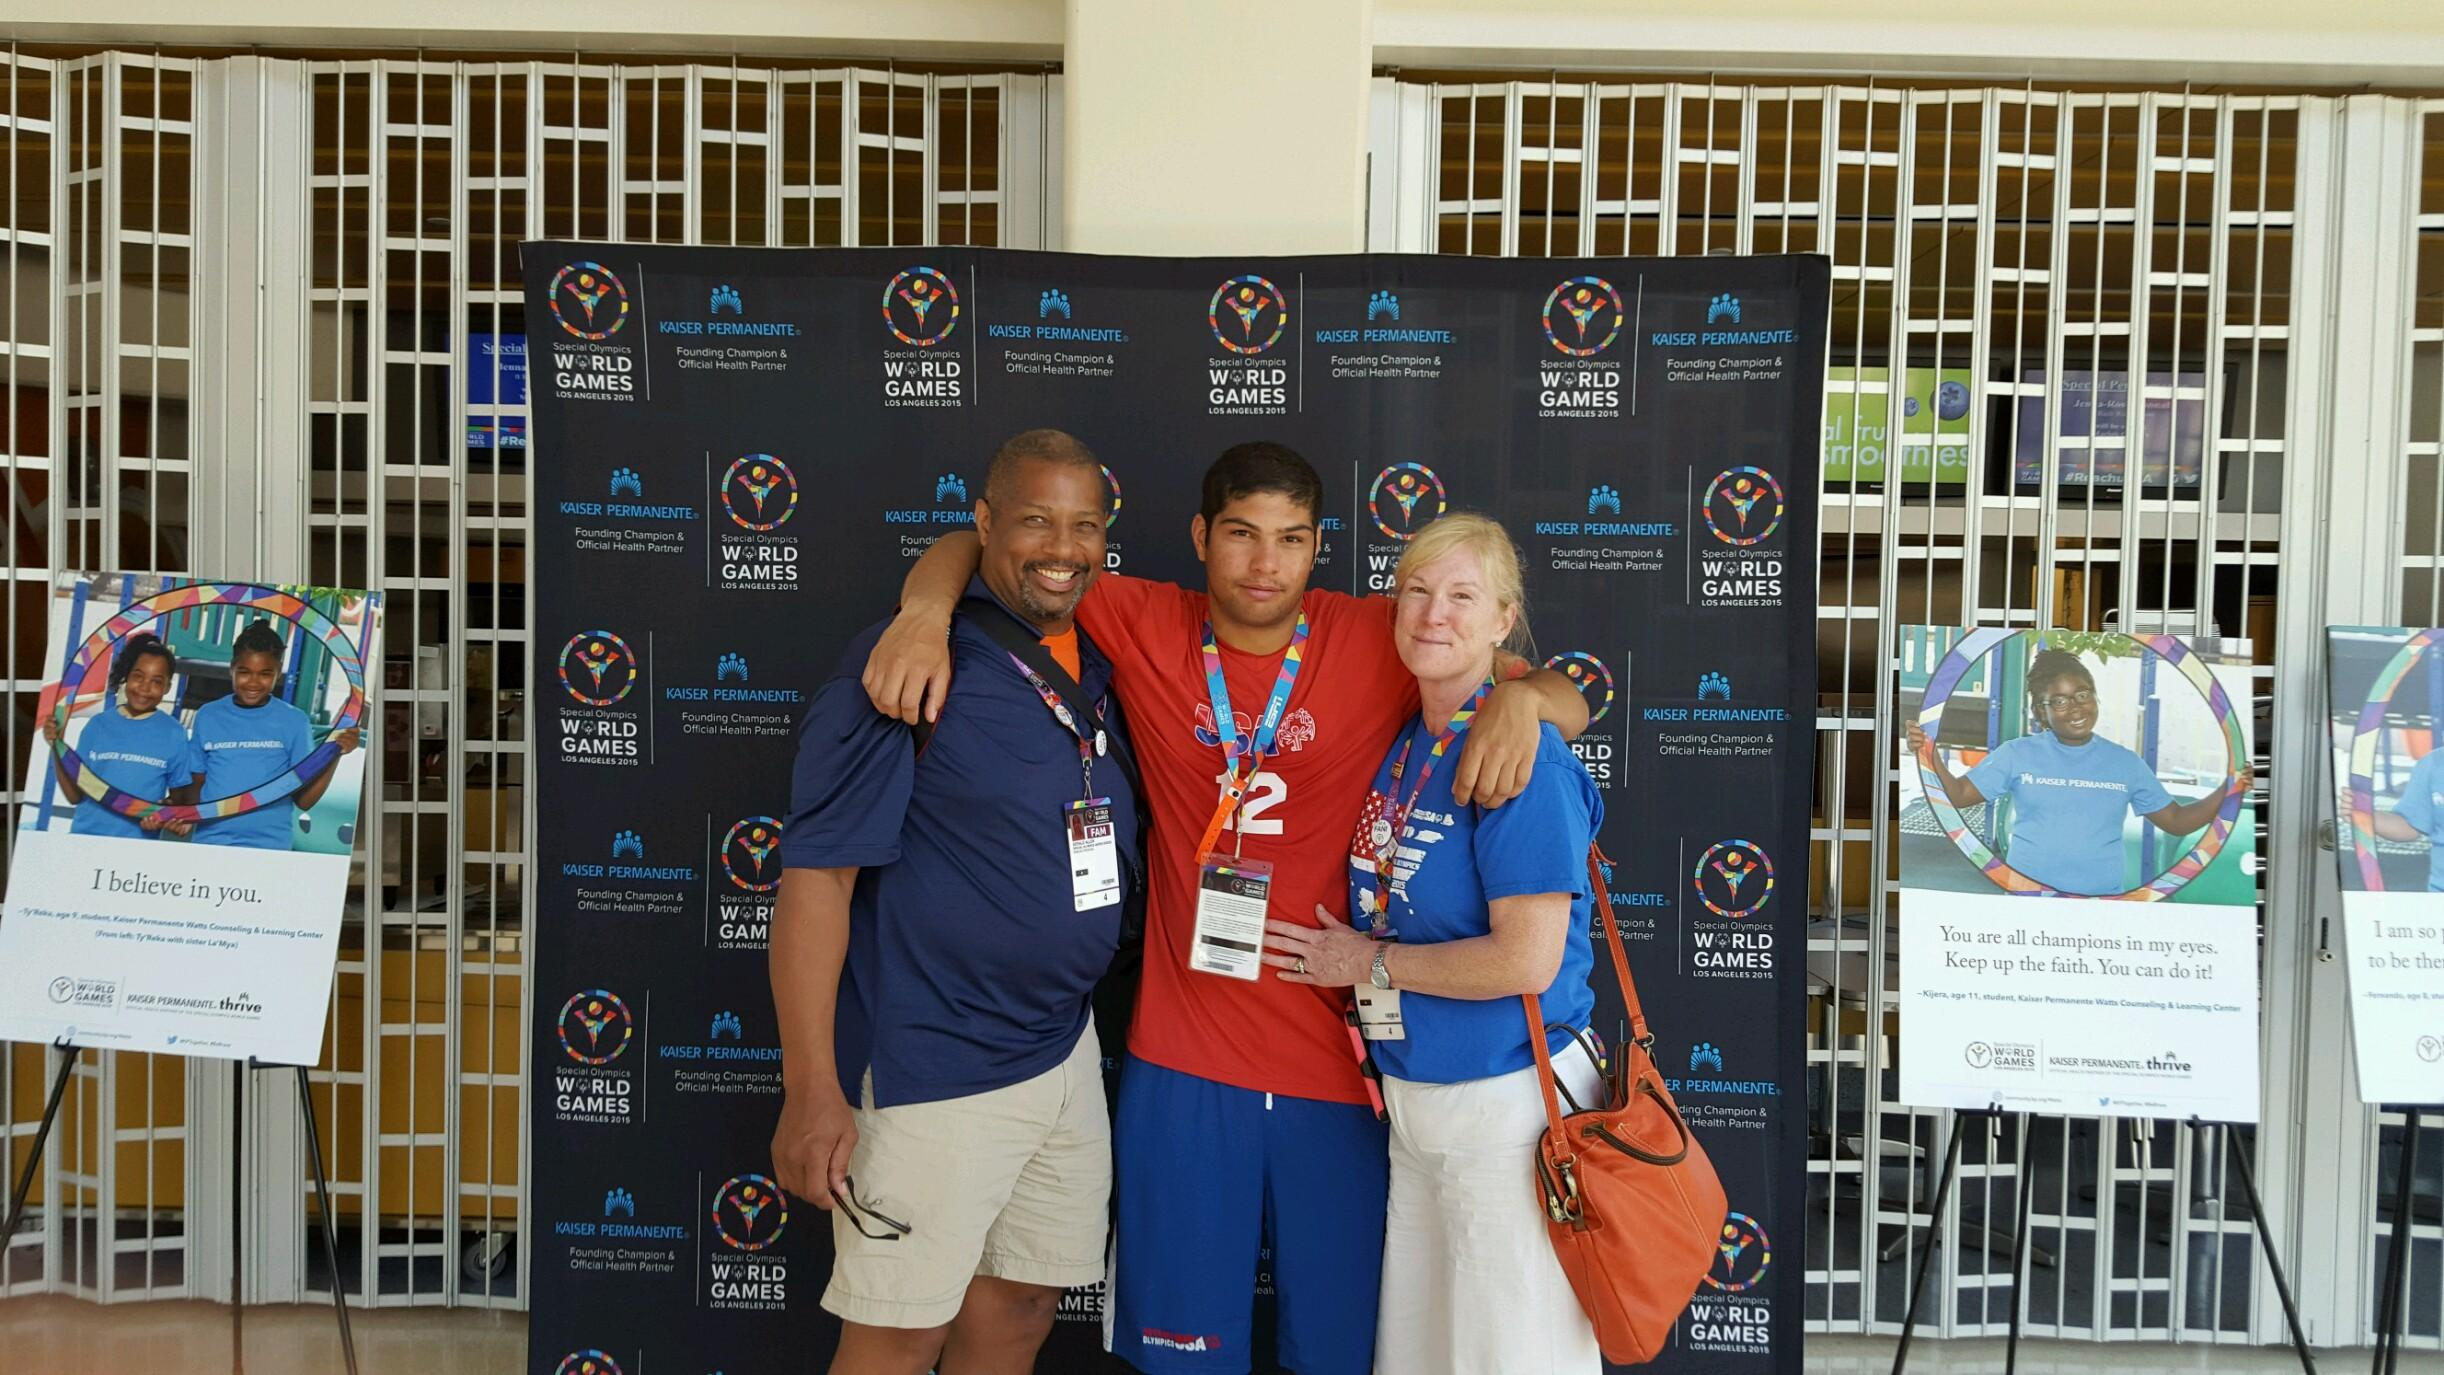 Our Experience with Special Olympics